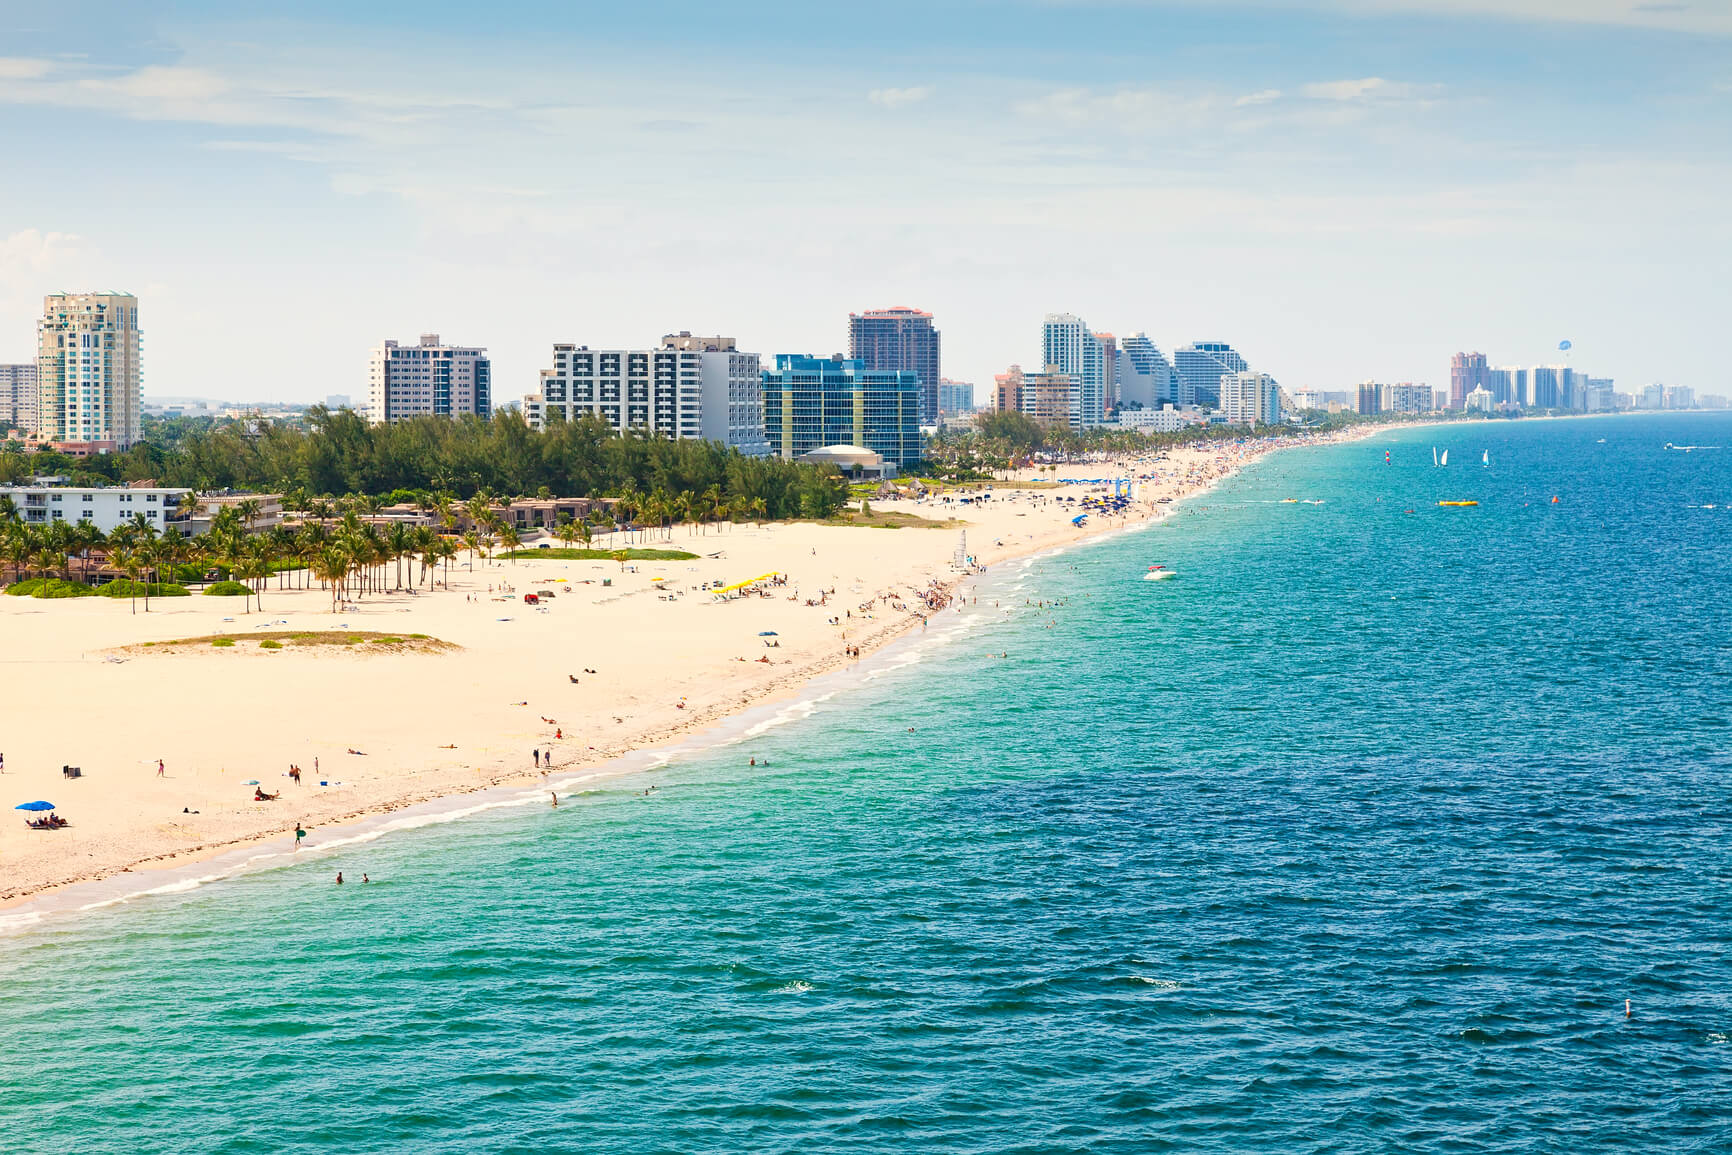 Non-stop from Chicago to Fort Lauderdale (& vice versa) for only $74 roundtrip (Sep-Dec dates)